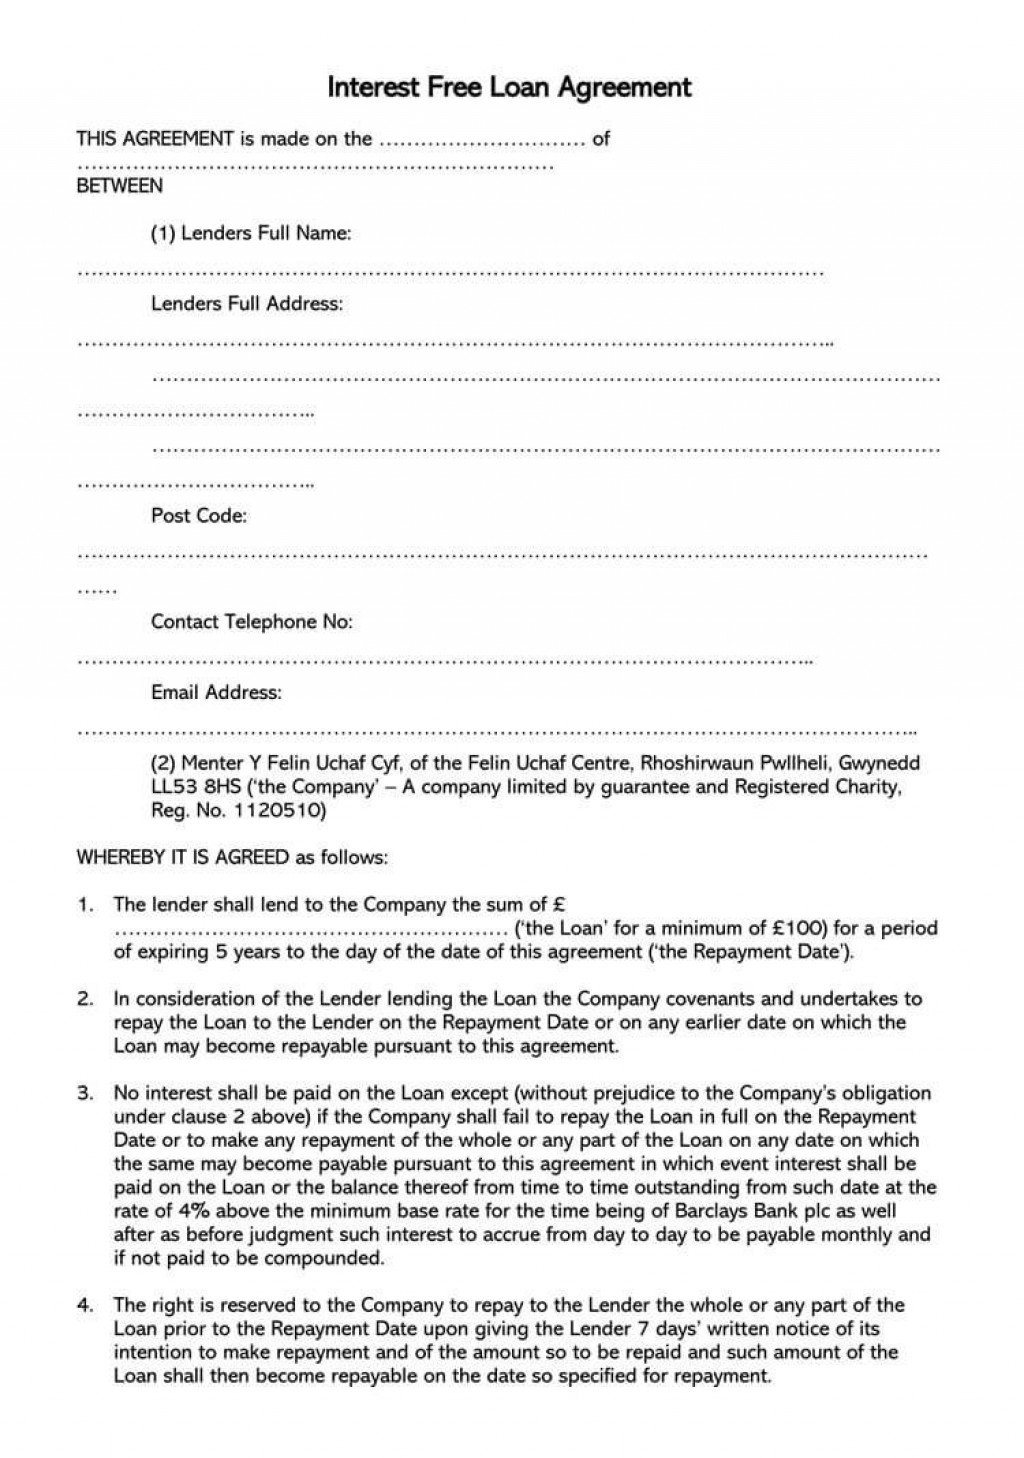 003 Rare Loan Agreement Template Free Image  Wording Family Uk Personal AustraliaLarge